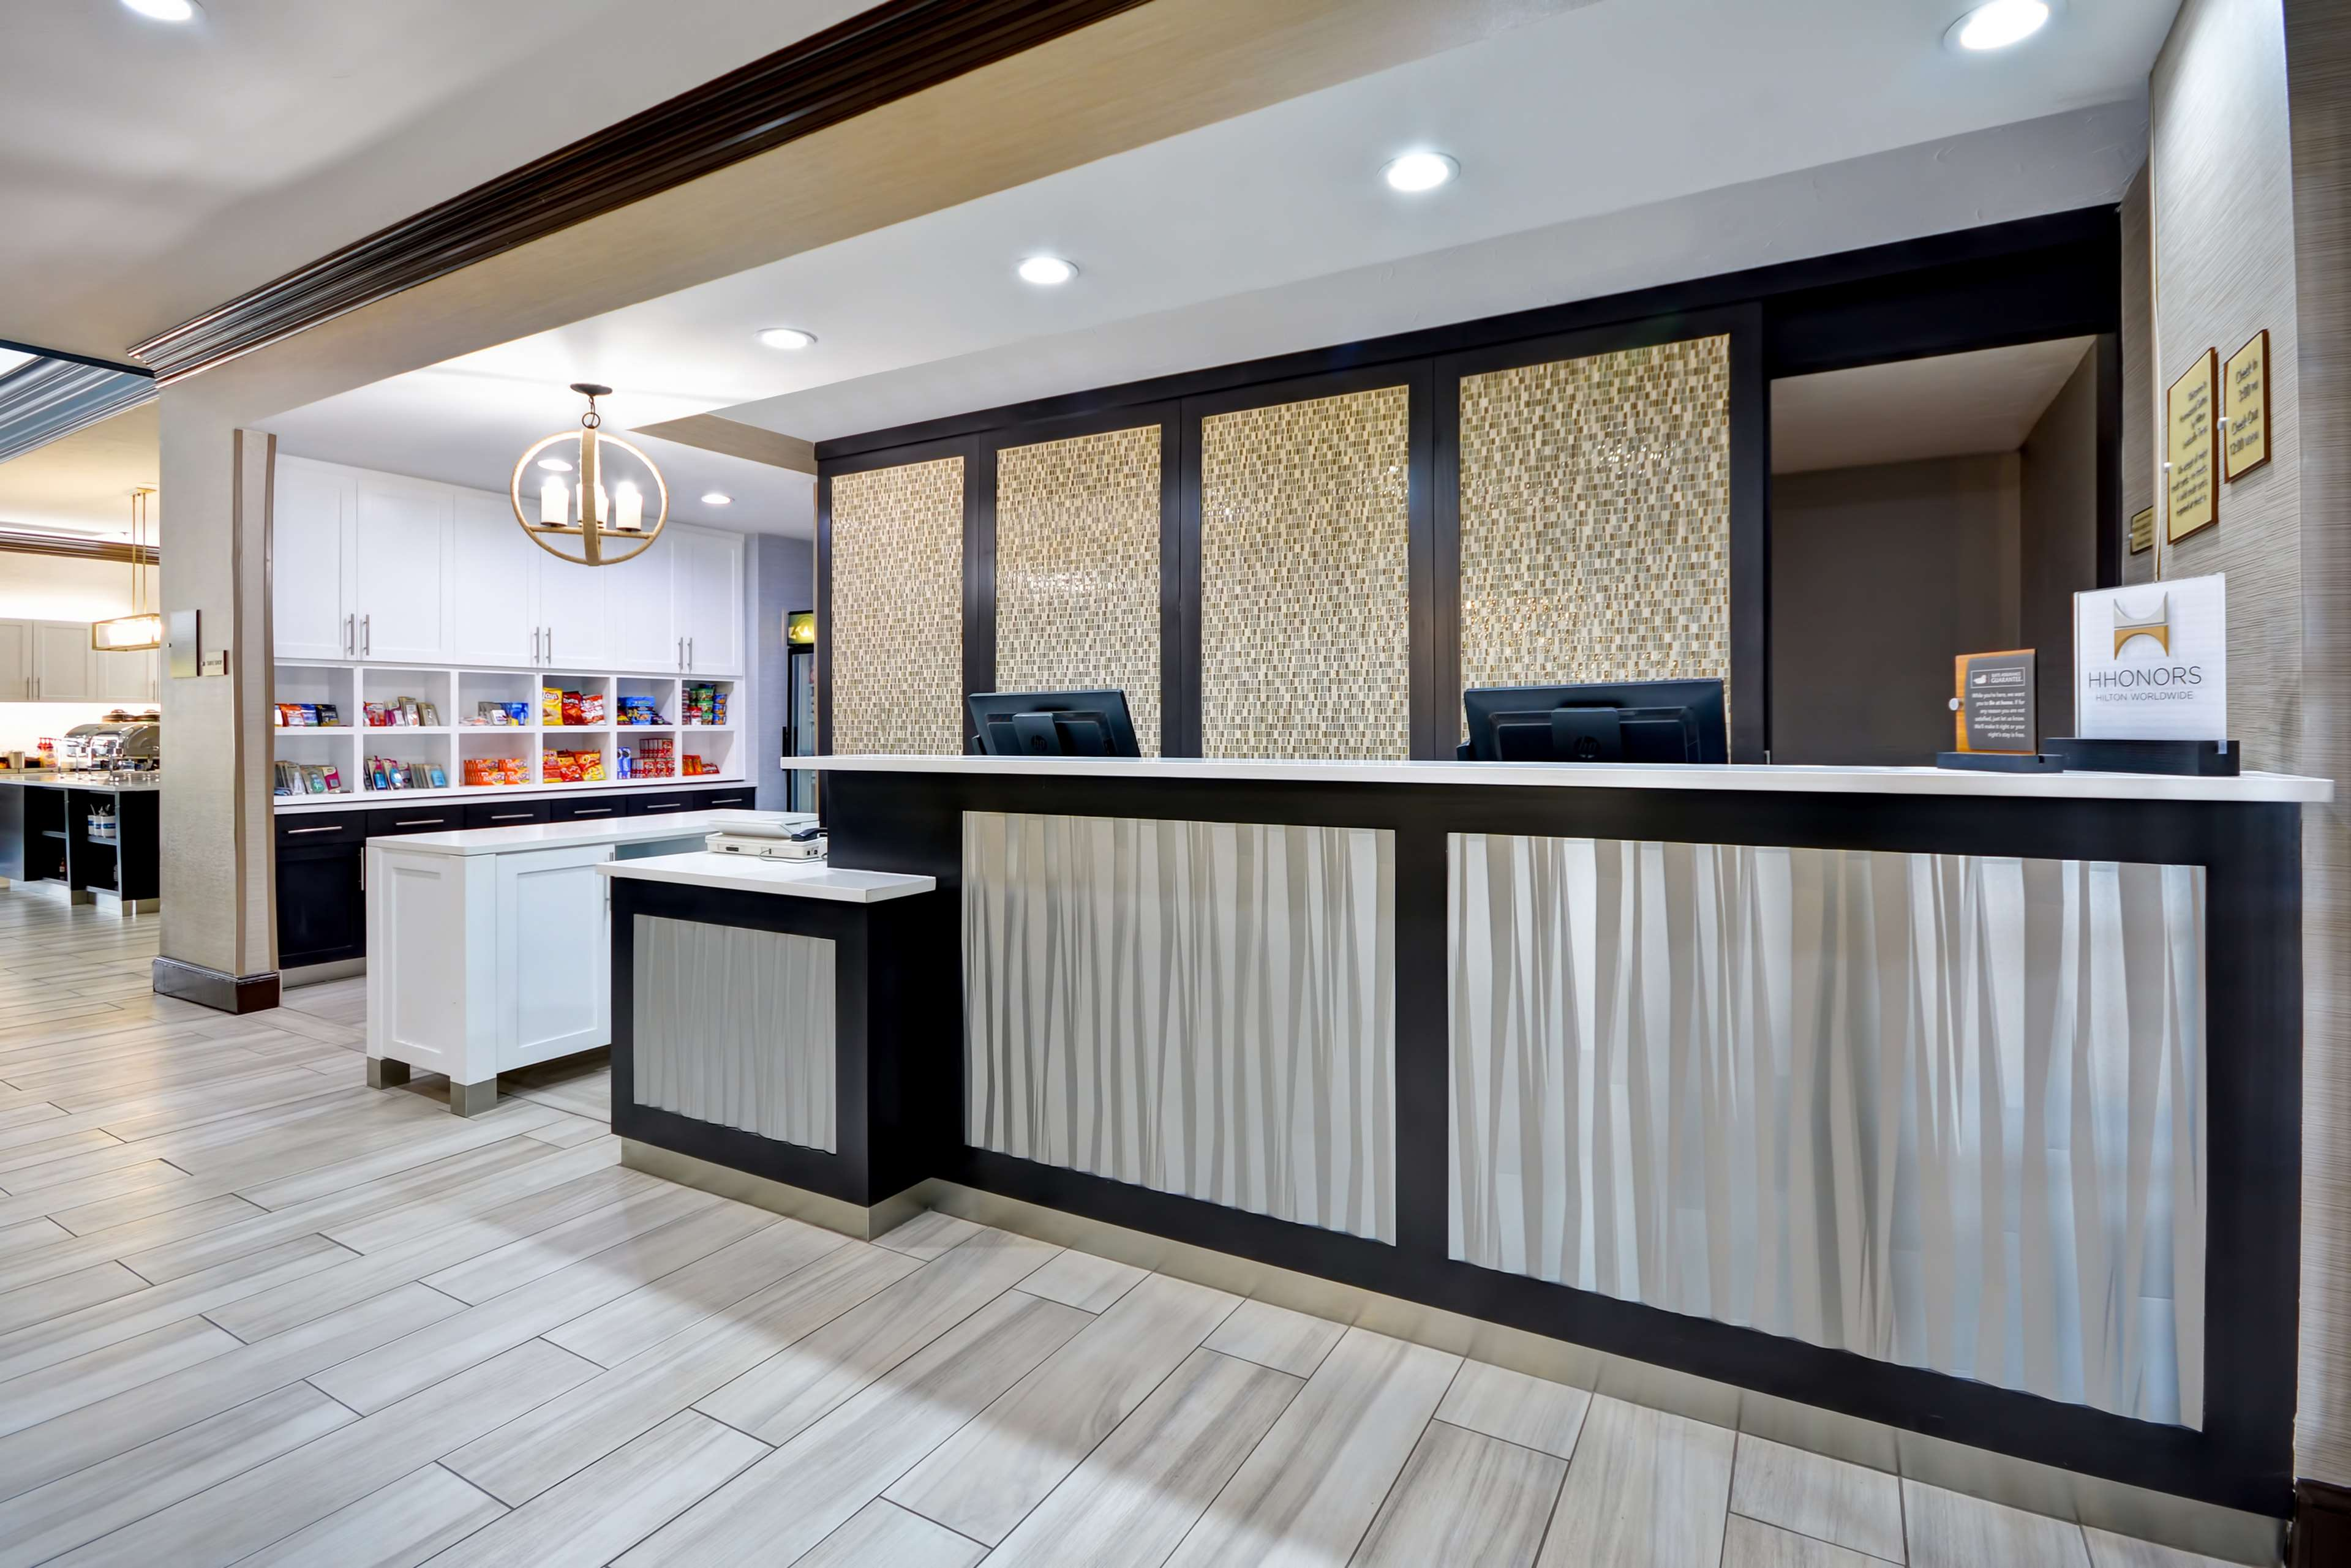 Homewood Suites by Hilton Dallas-Lewisville image 5